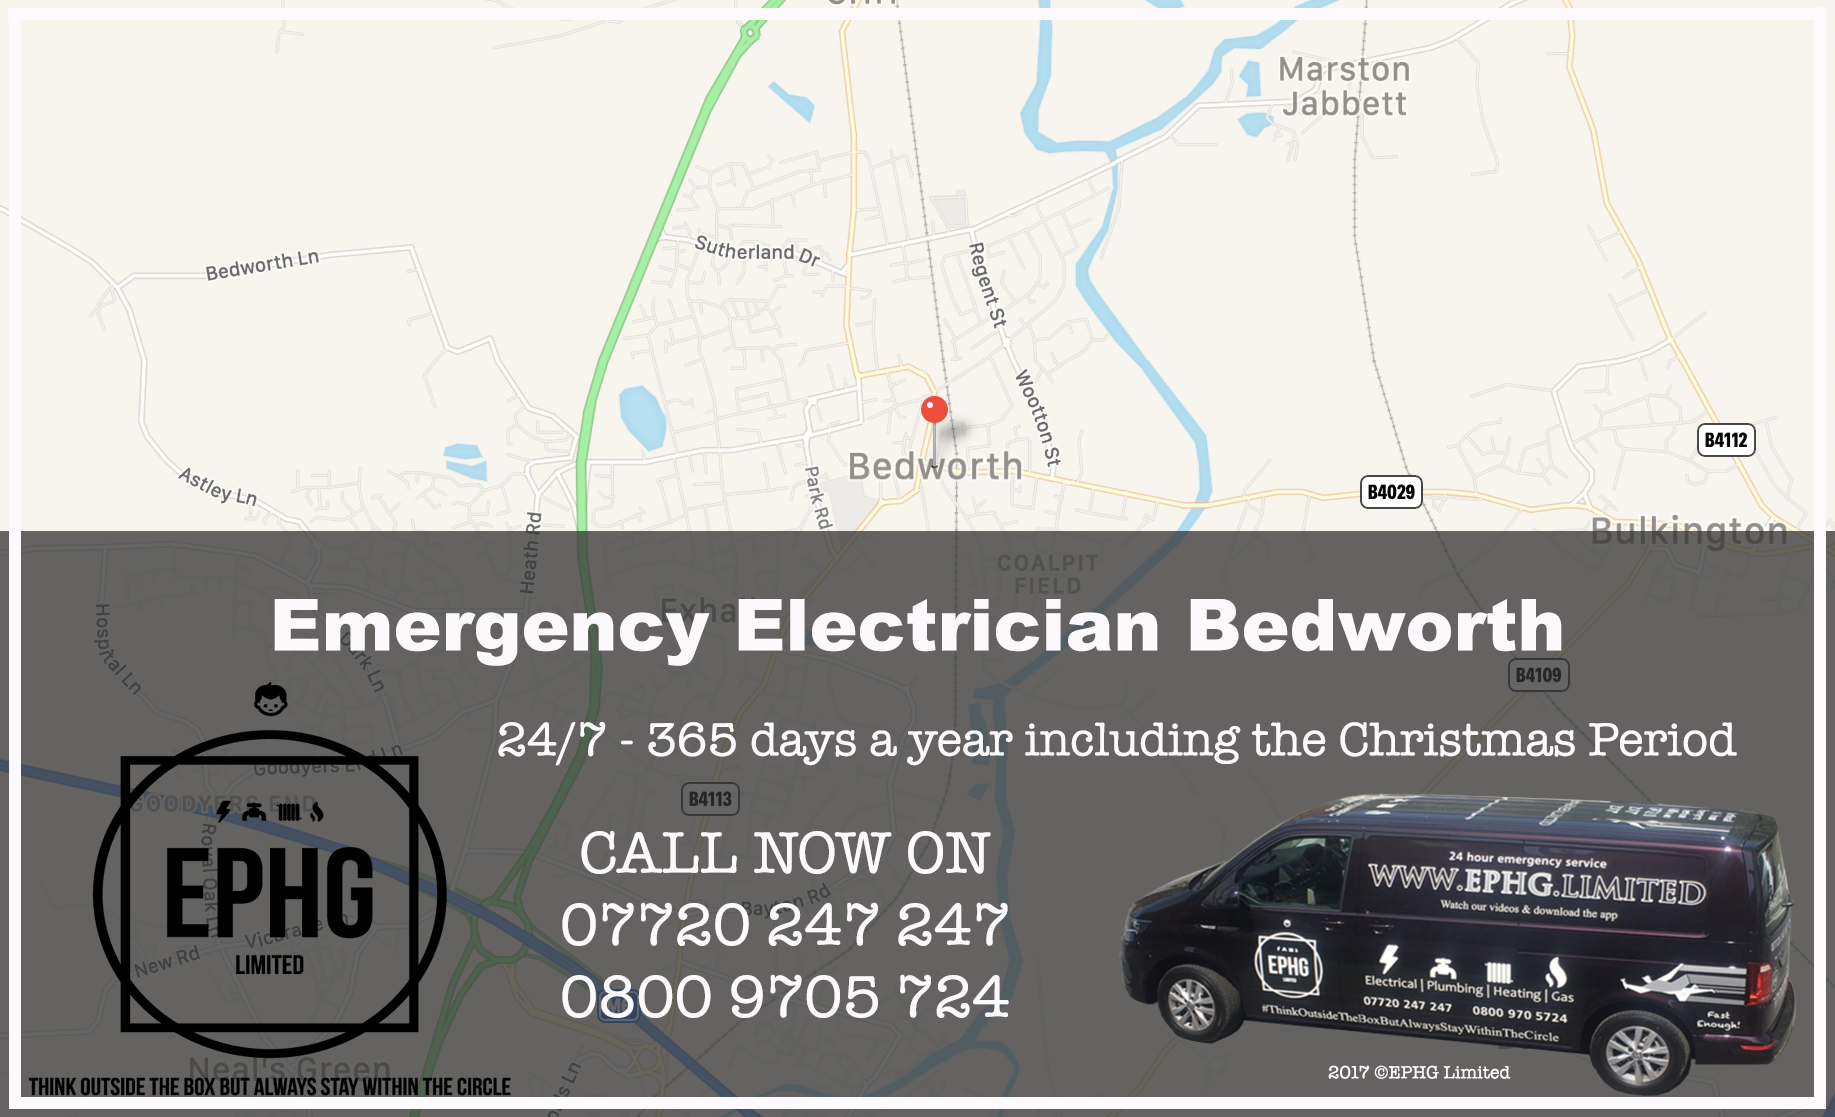 Emergency Electrician Bedworth